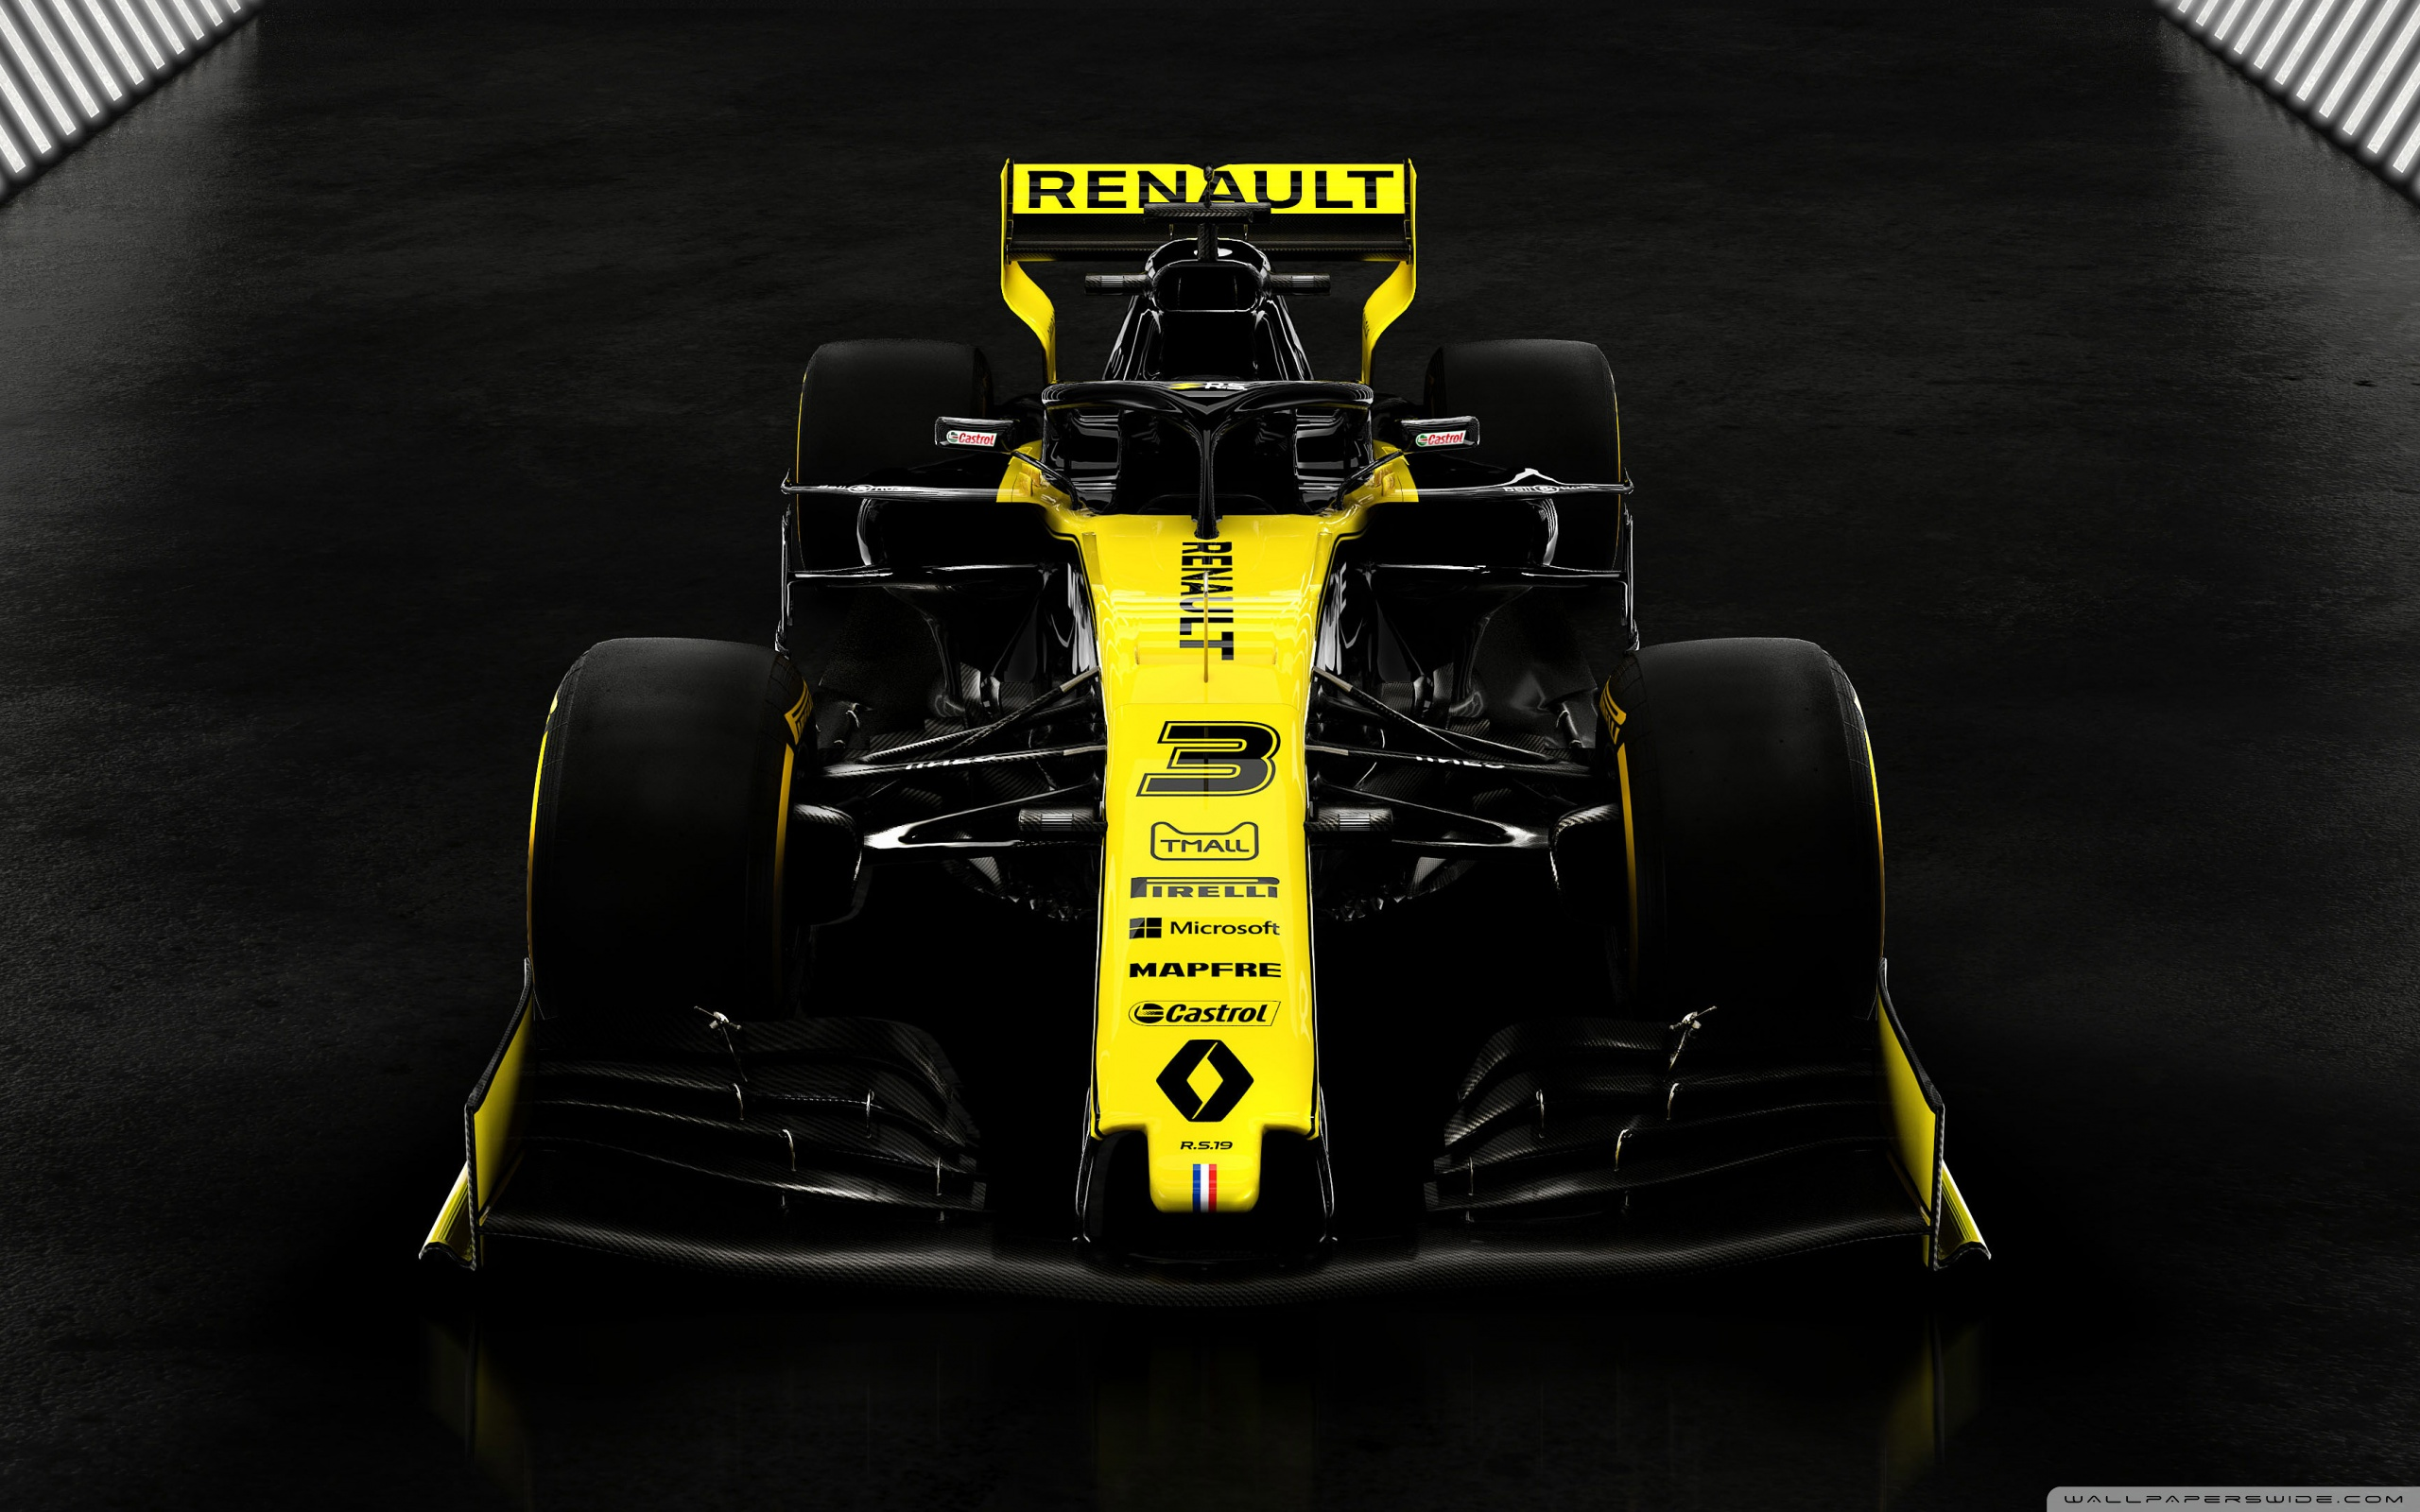 Renault F1 2019 4K HD Desktop Wallpaper for 4K Ultra HD TV 2560x1600